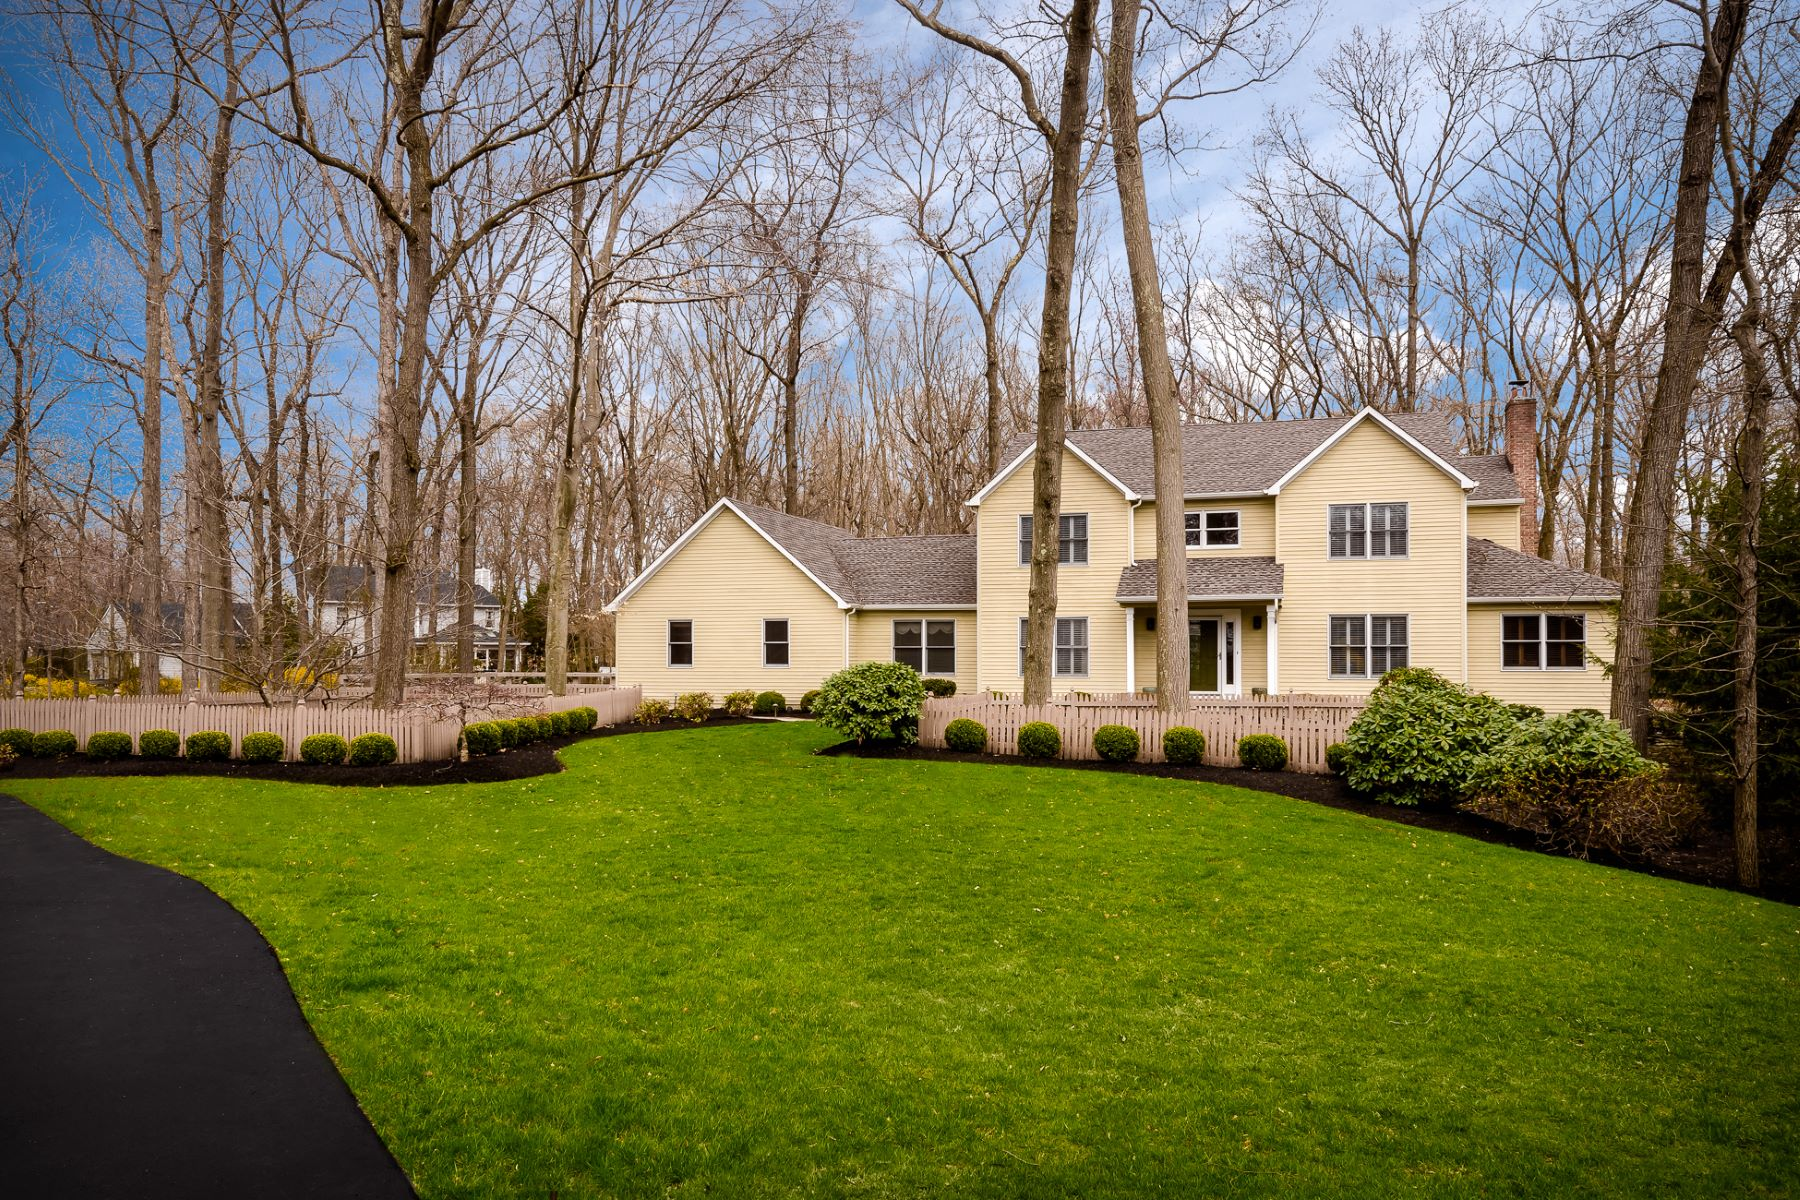 Single Family Homes por un Venta en A Premium Position on a Manicured Cul-De-Sac 16 Blackhawk Court, West Windsor, Nueva Jersey 08550 Estados Unidos